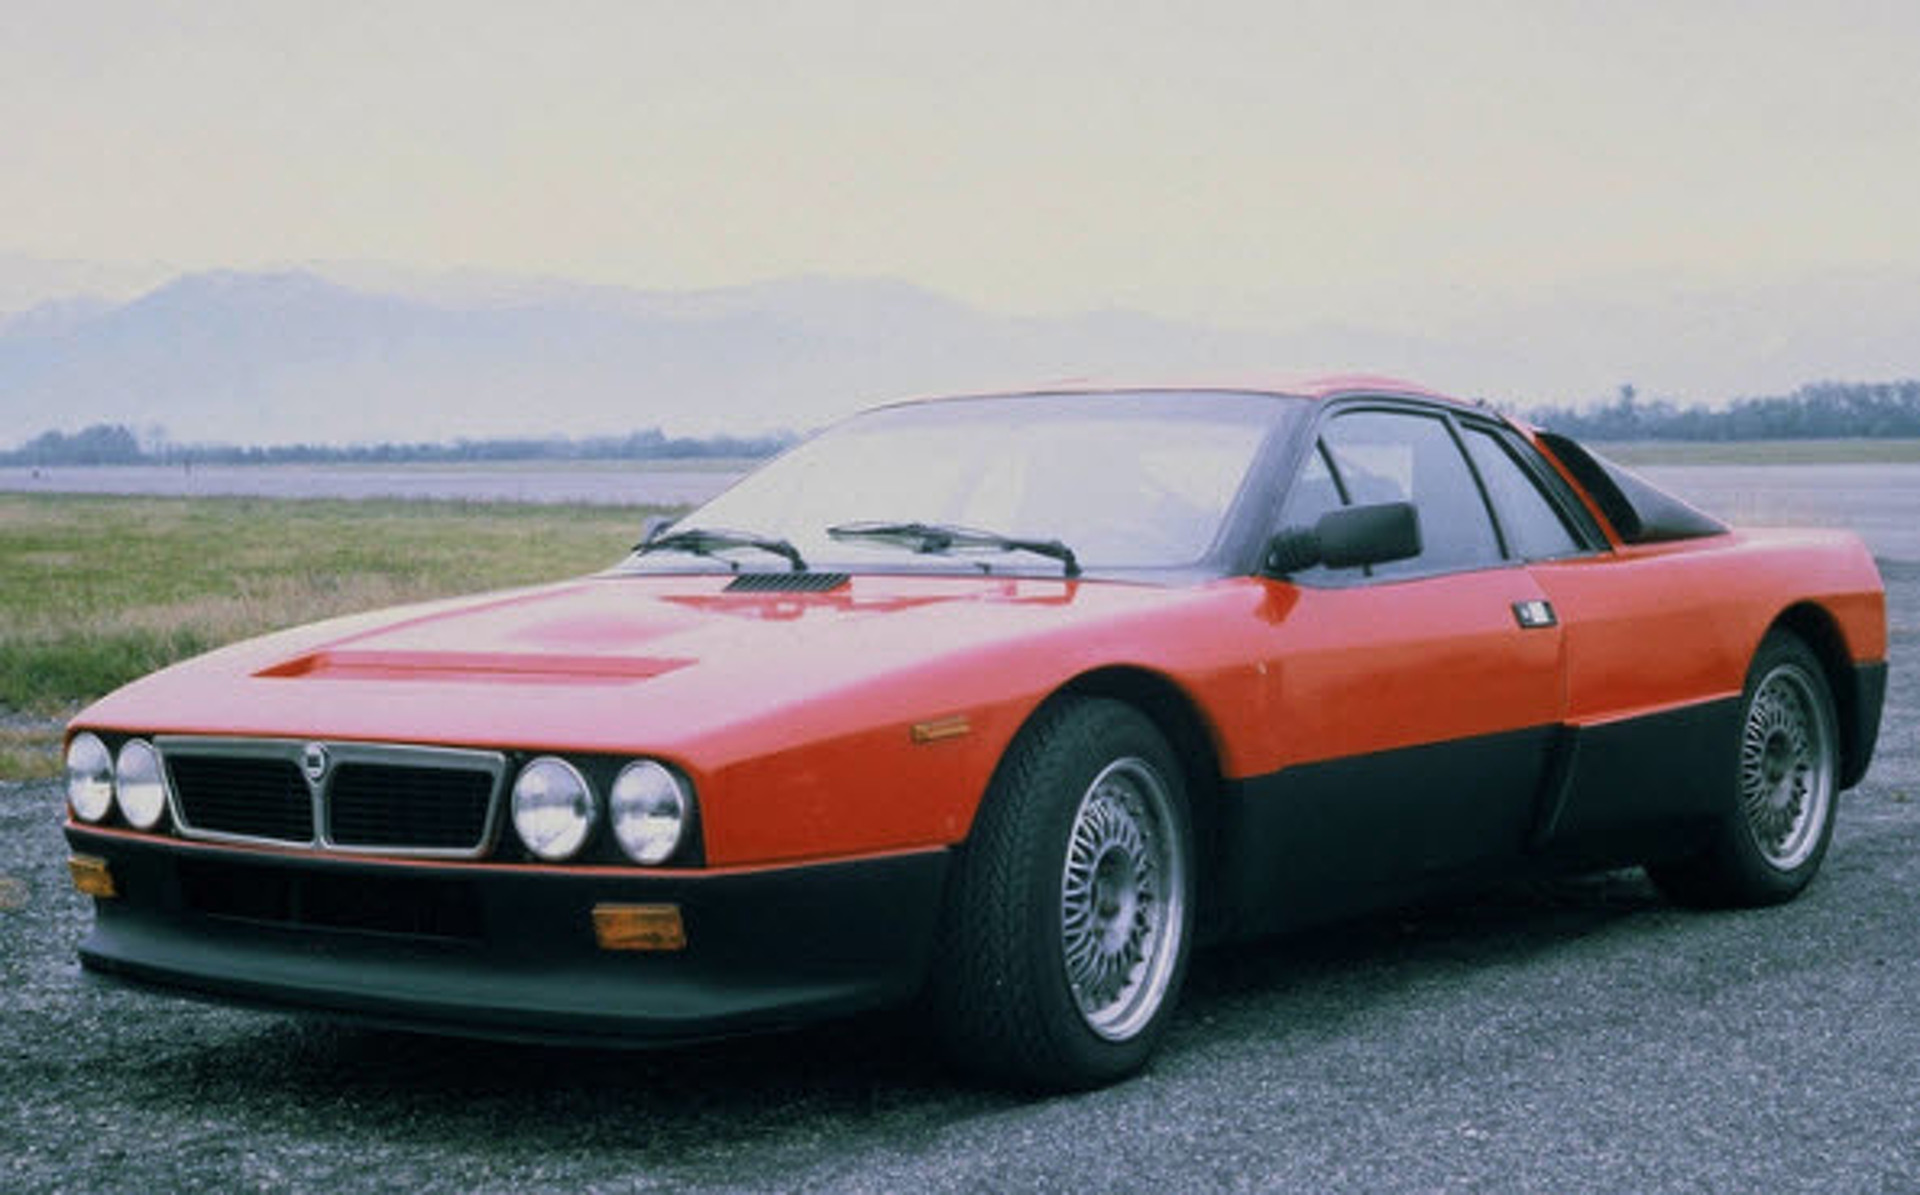 Why Lancia Never Made it in America